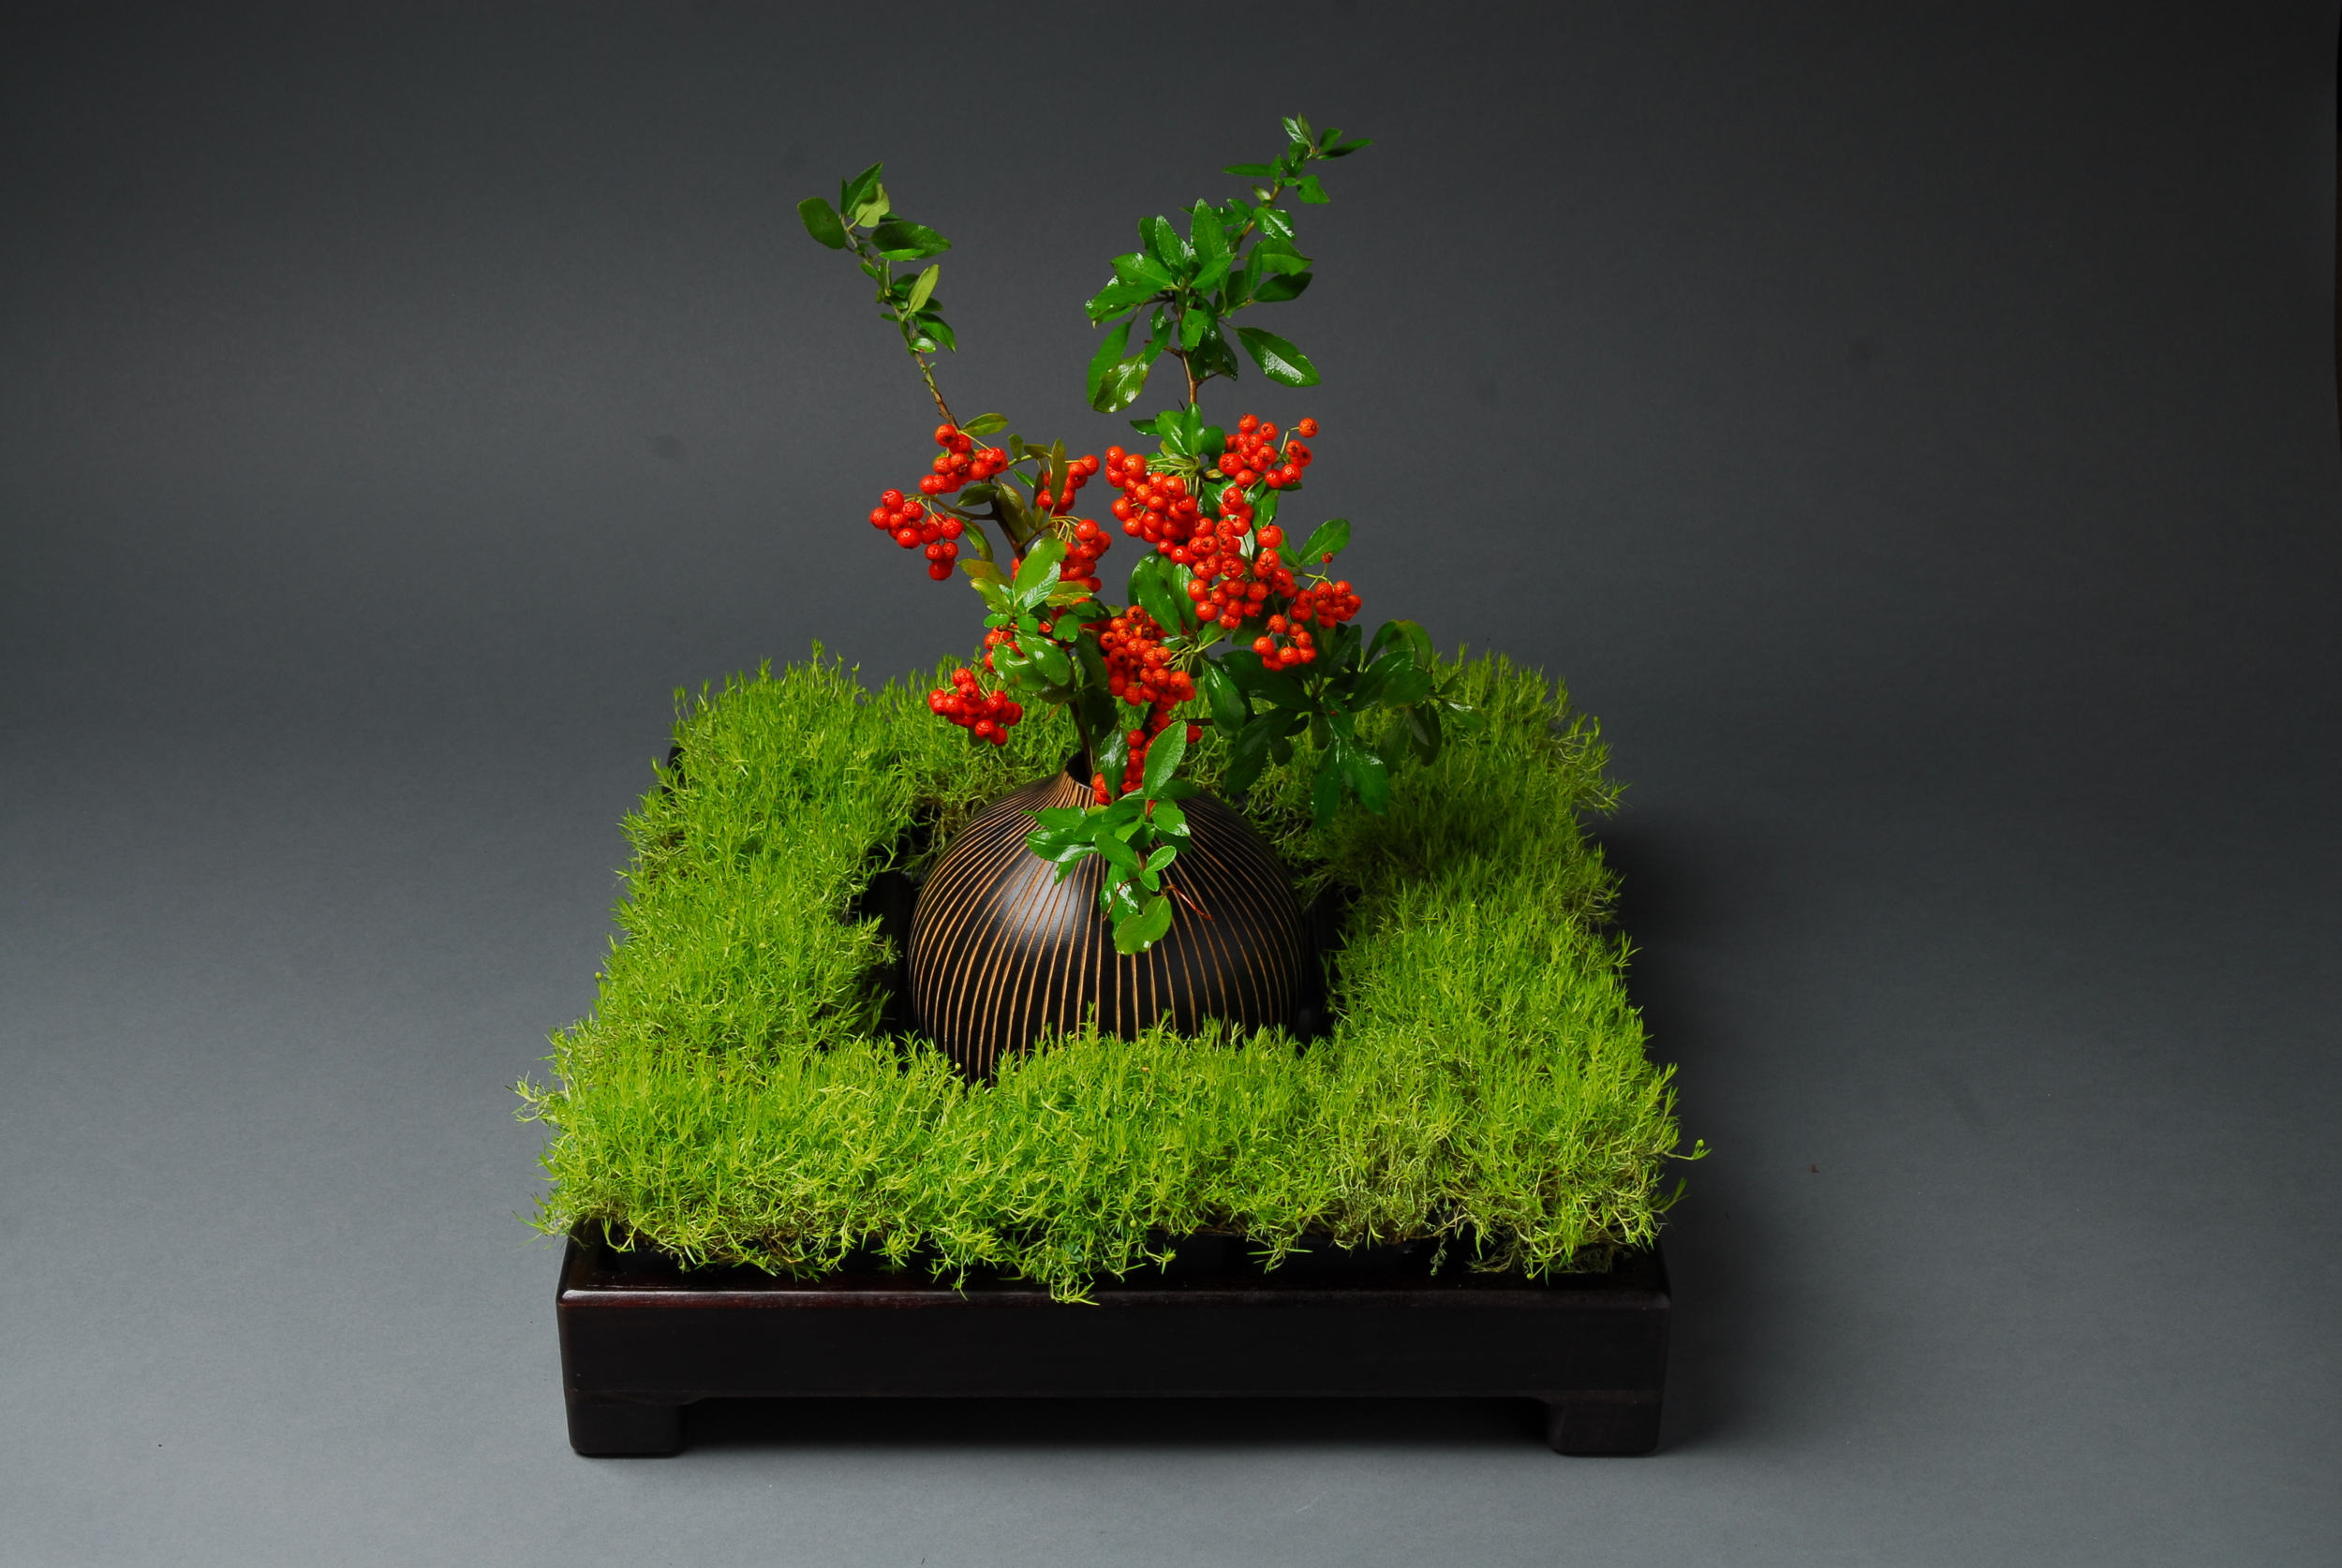 Black square wood vase filled with grass and orange flowers in the center